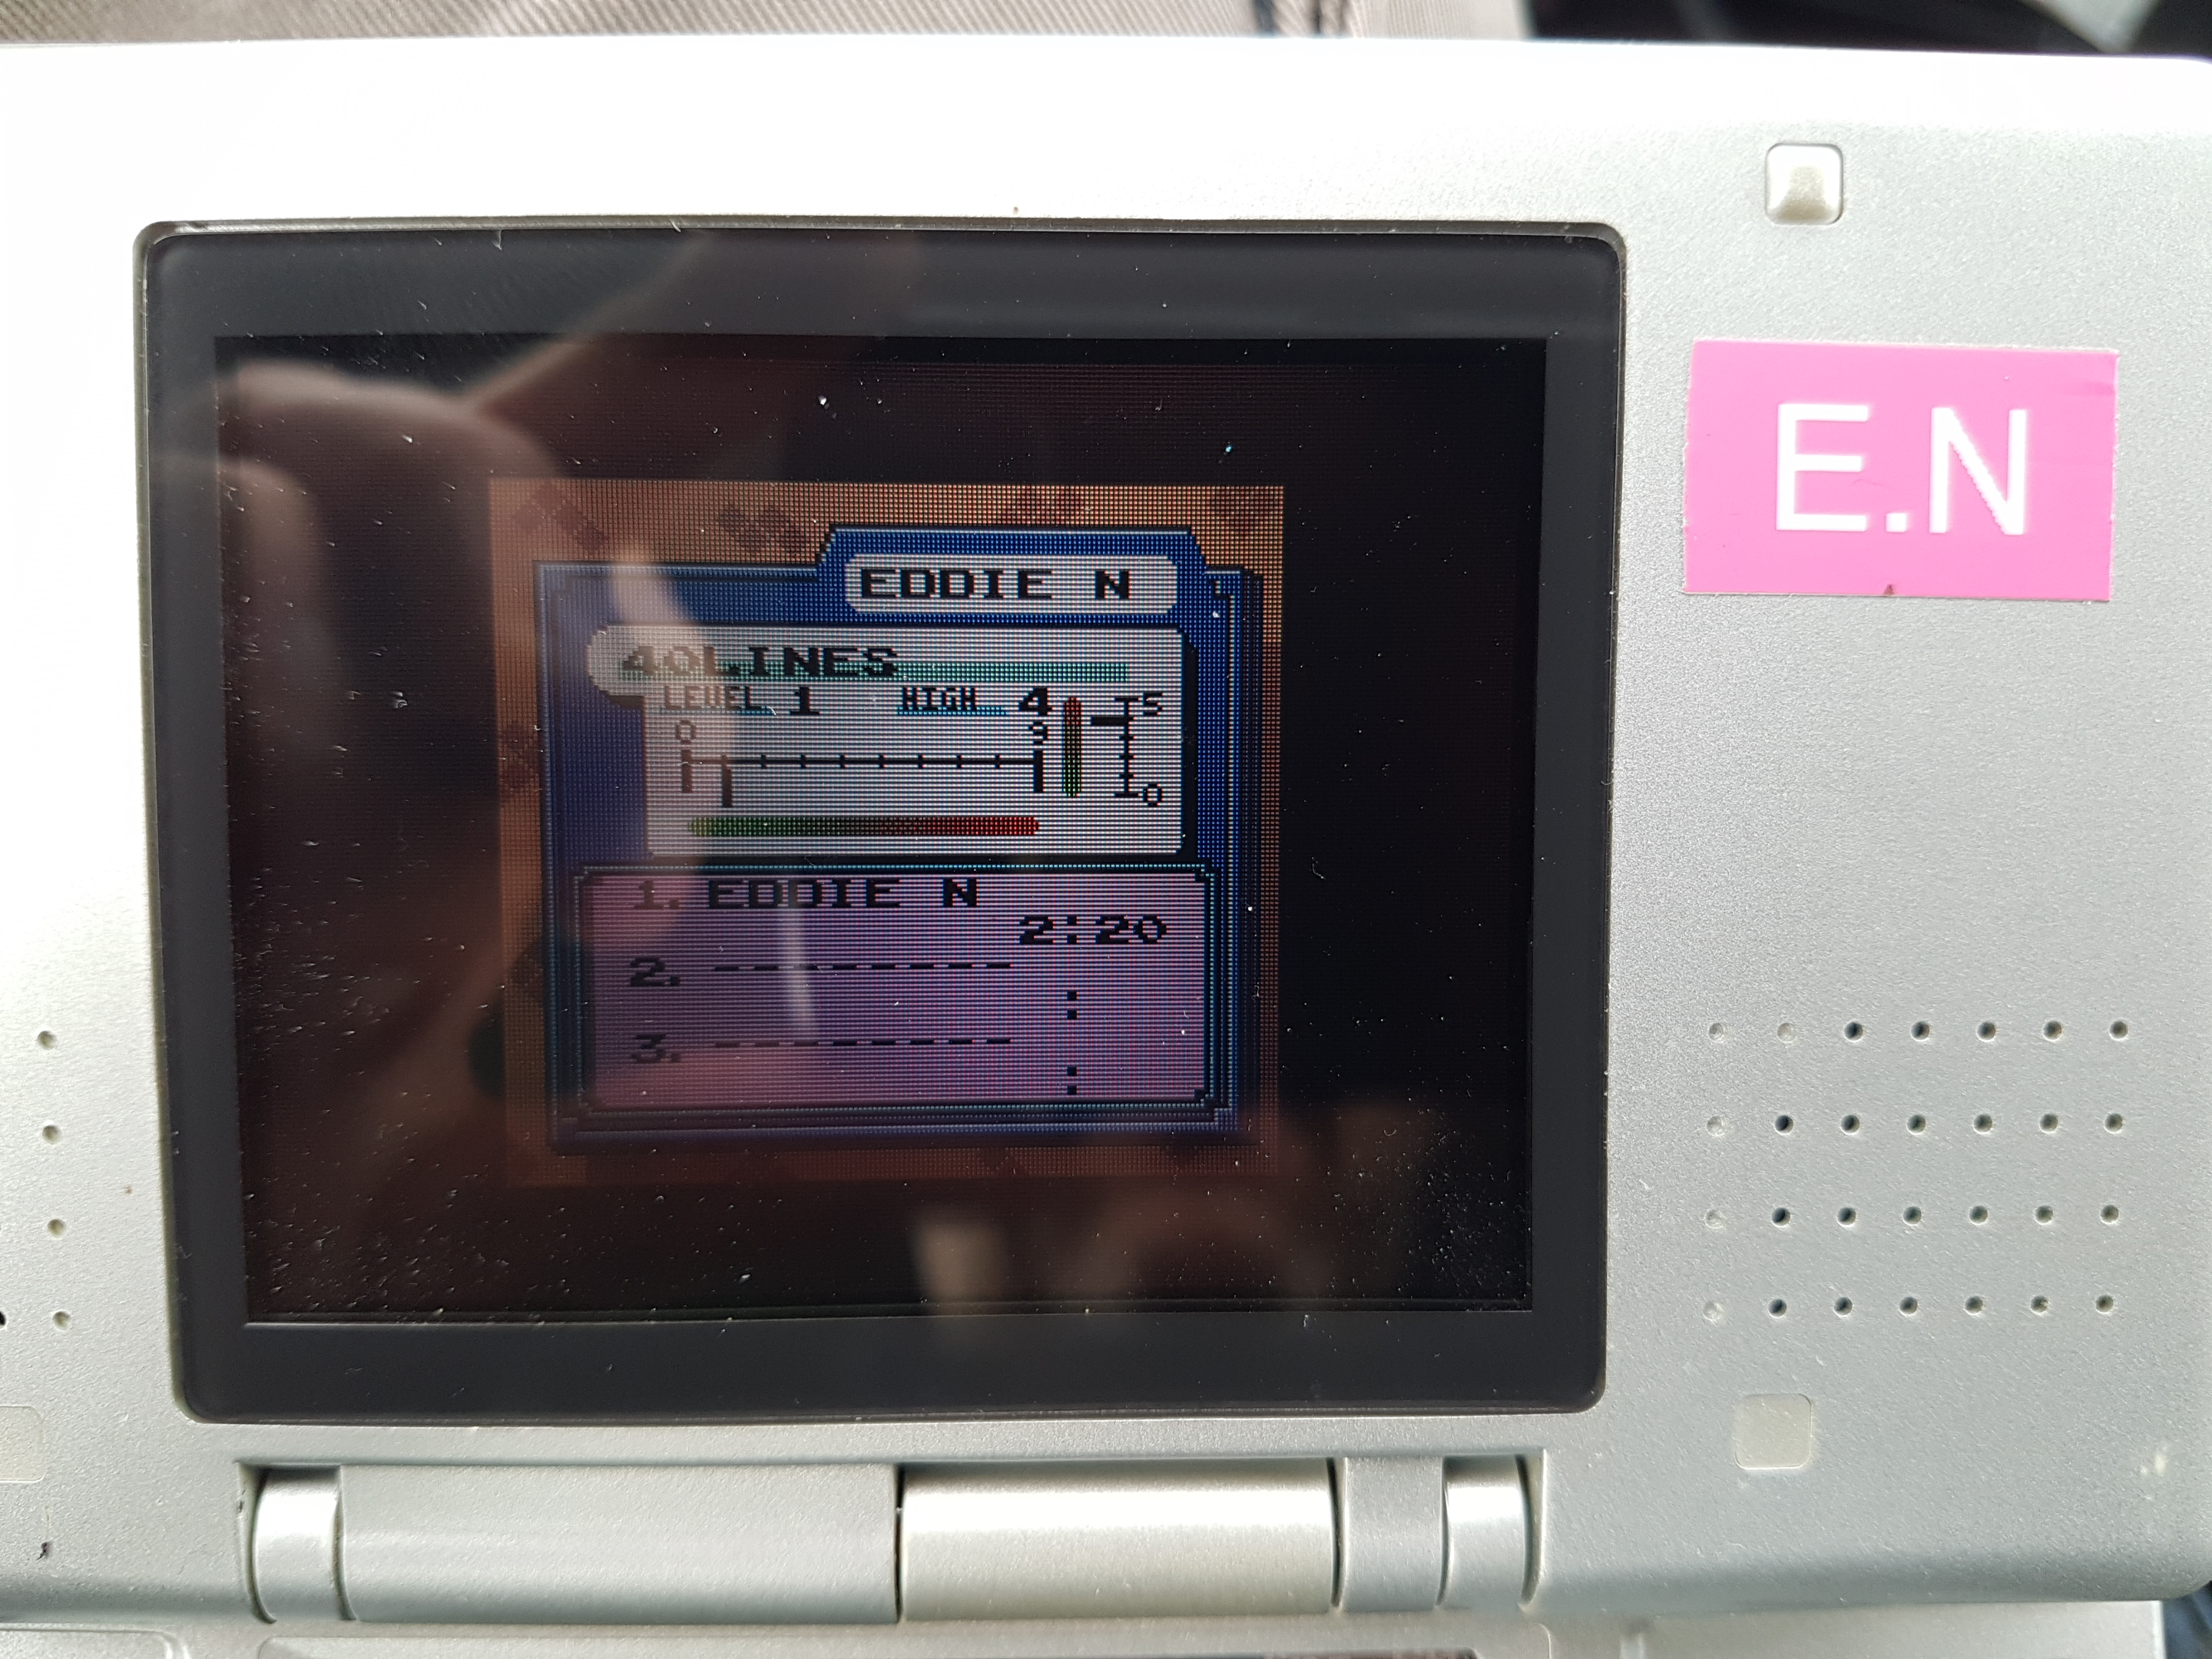 EddieNiceguy: Tetris DX: 40 Lines [Level 1/Height 4] (Game Boy Color Emulated) 0:02:20 points on 2019-01-16 05:49:16